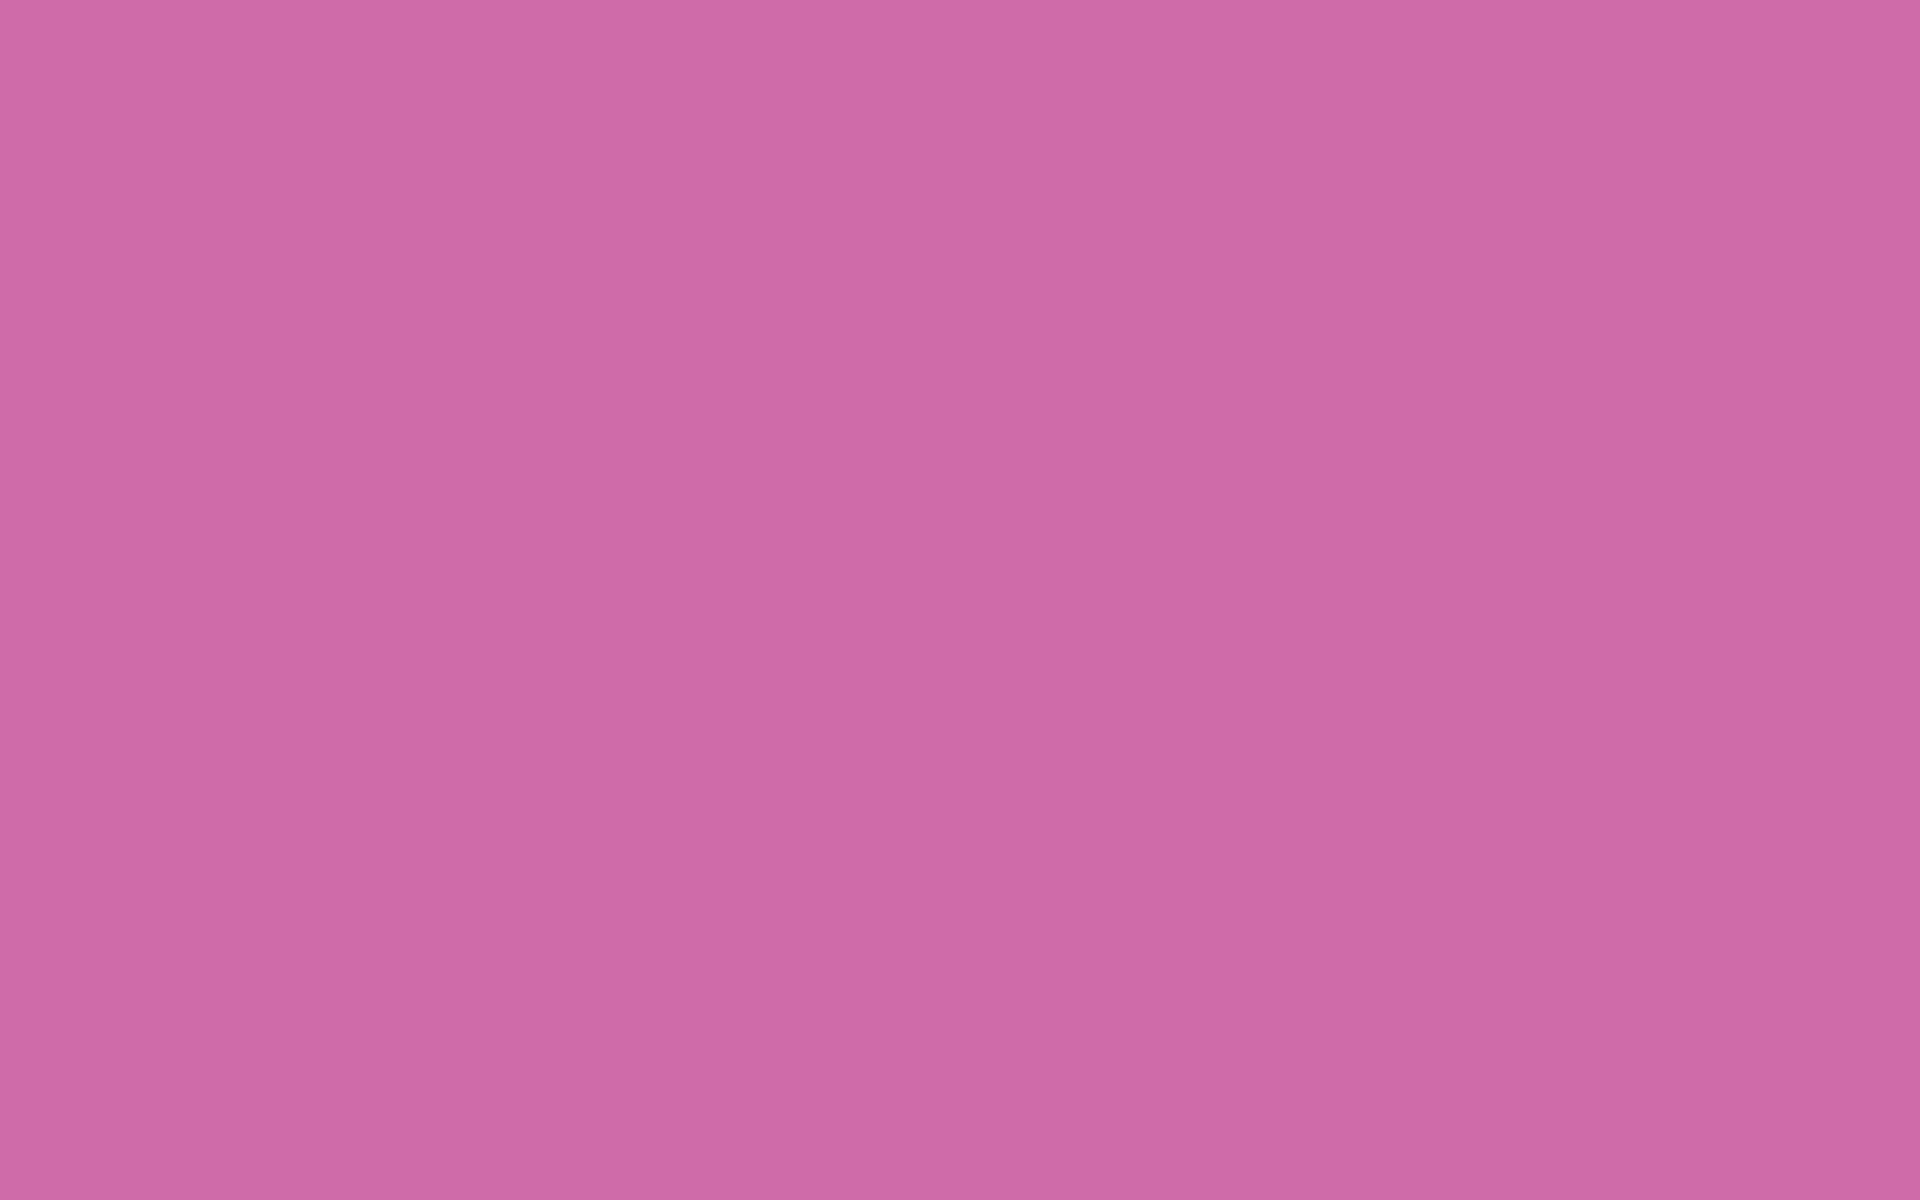 1920x1200 Super Pink Solid Color Background